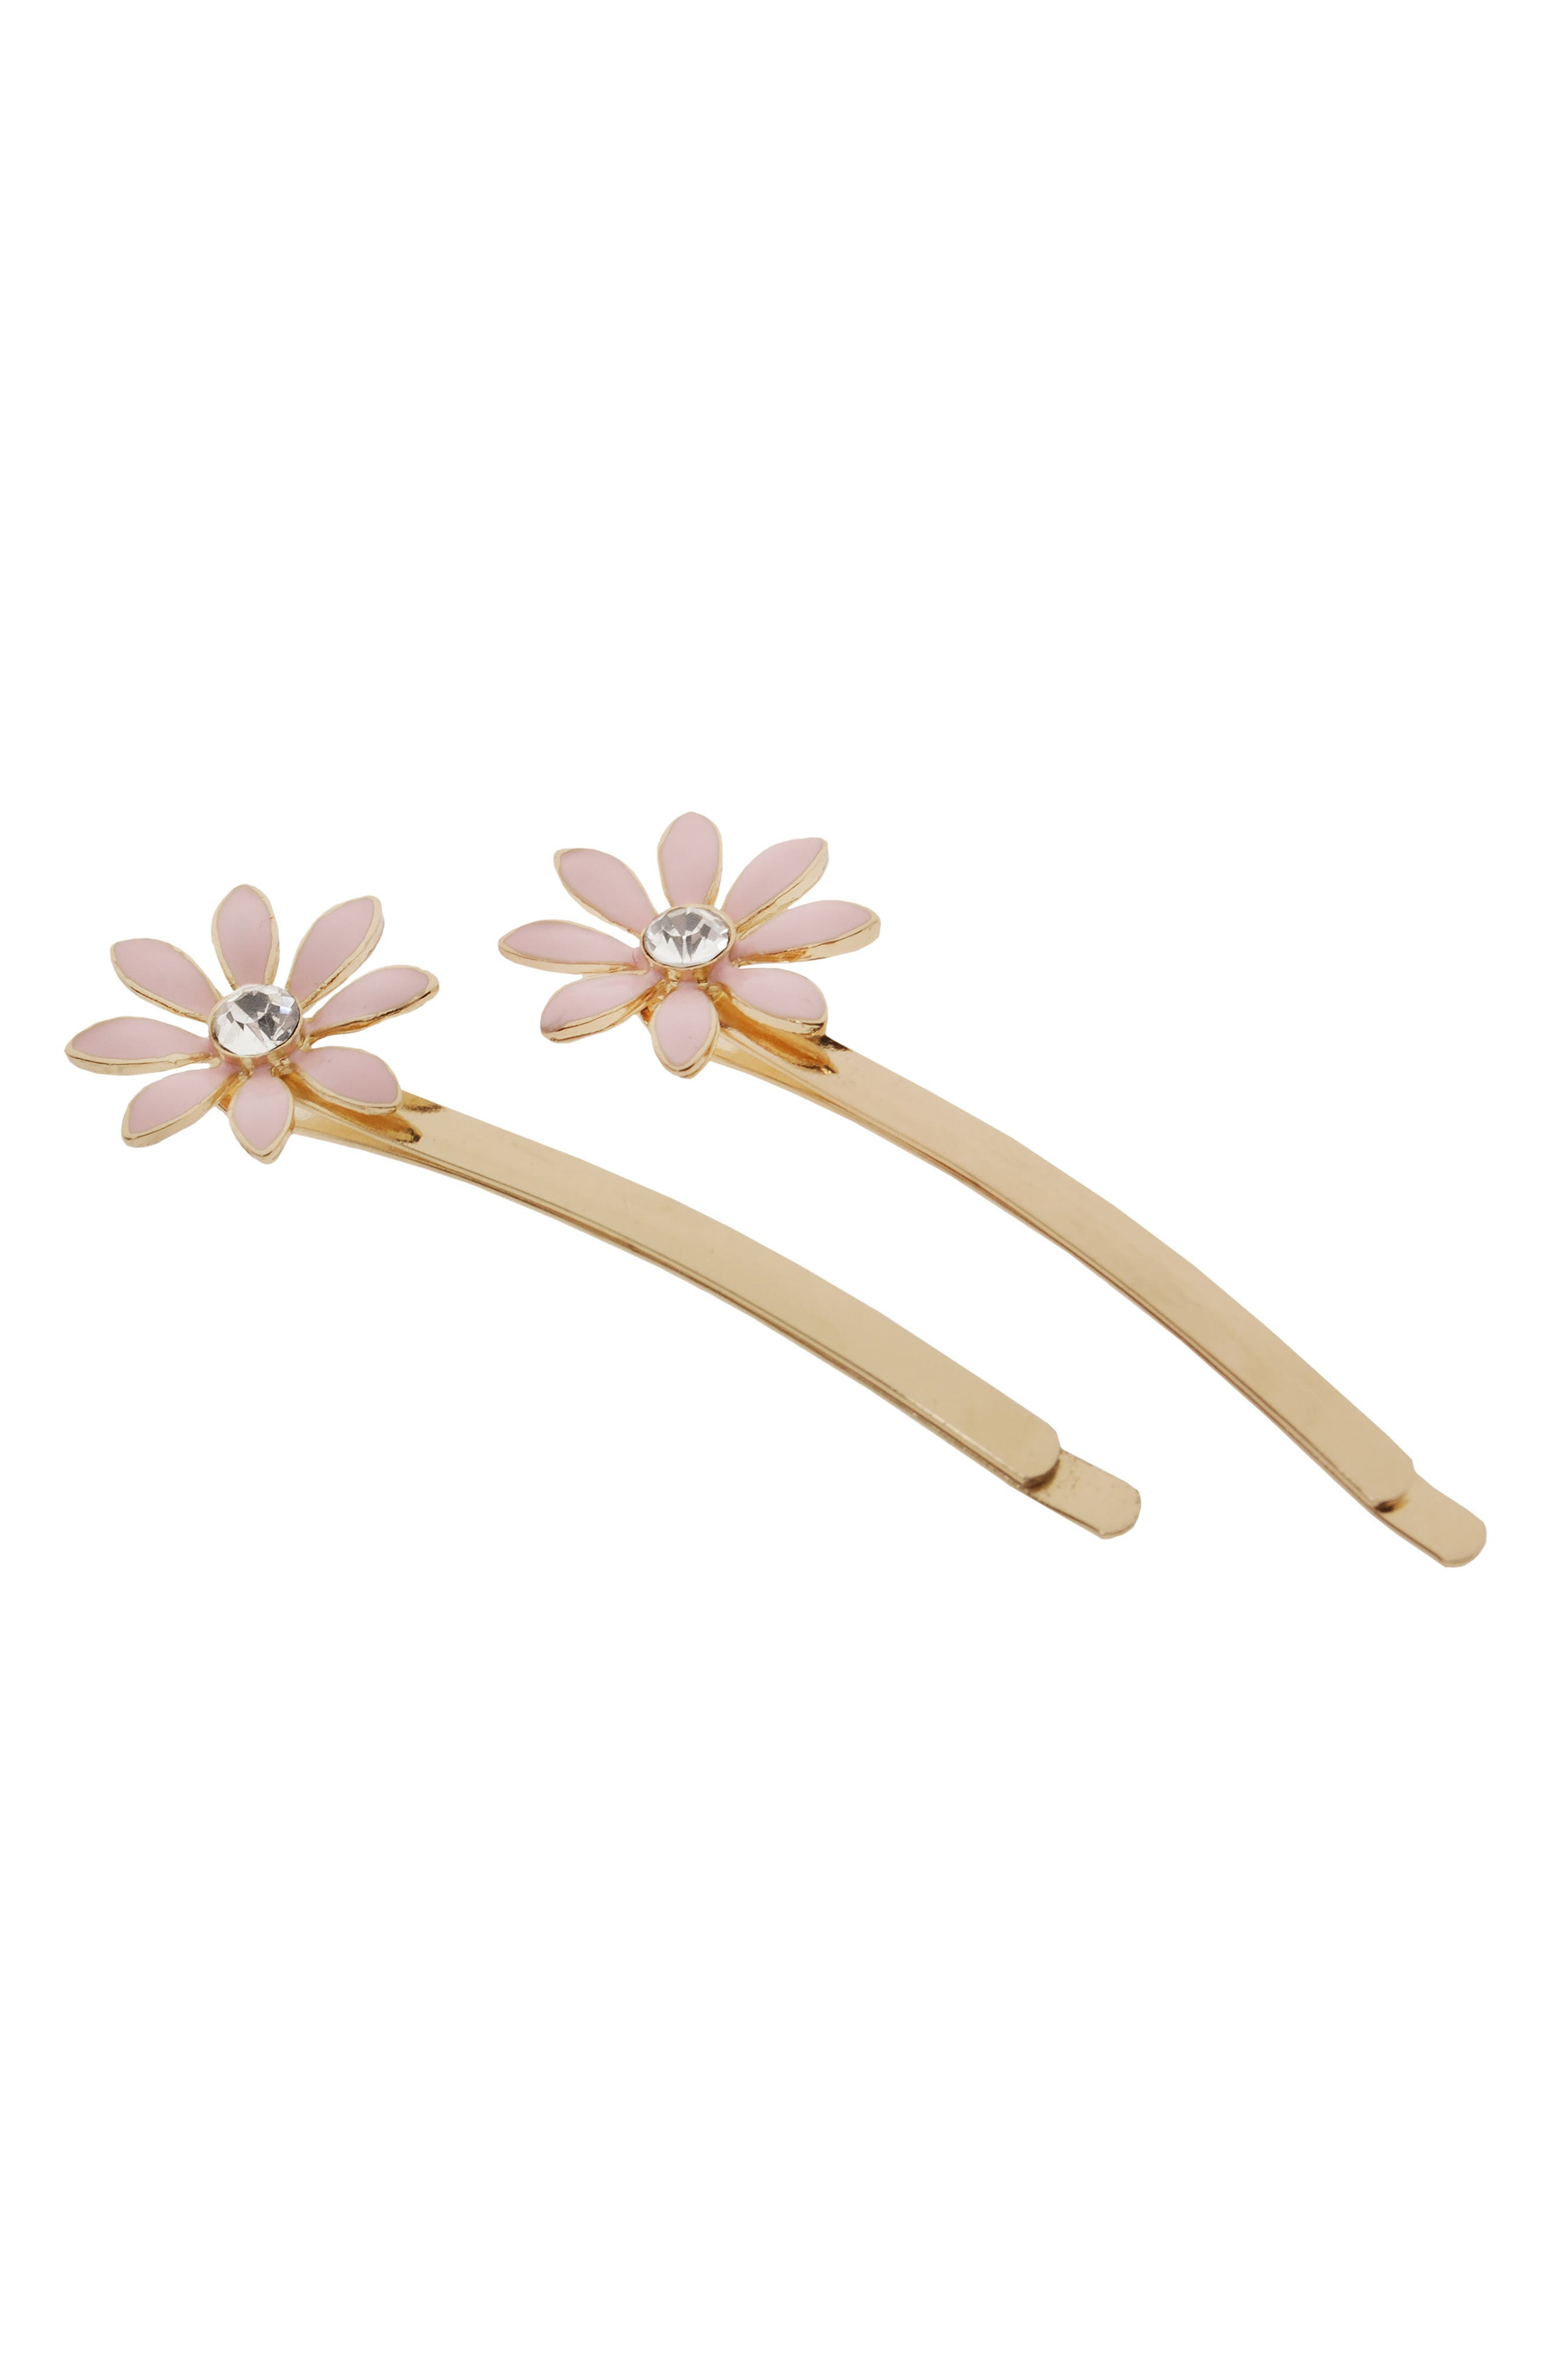 2-Pack Daisy Bobby Pins,                         Main,                         color, Pale Pink/ Gold